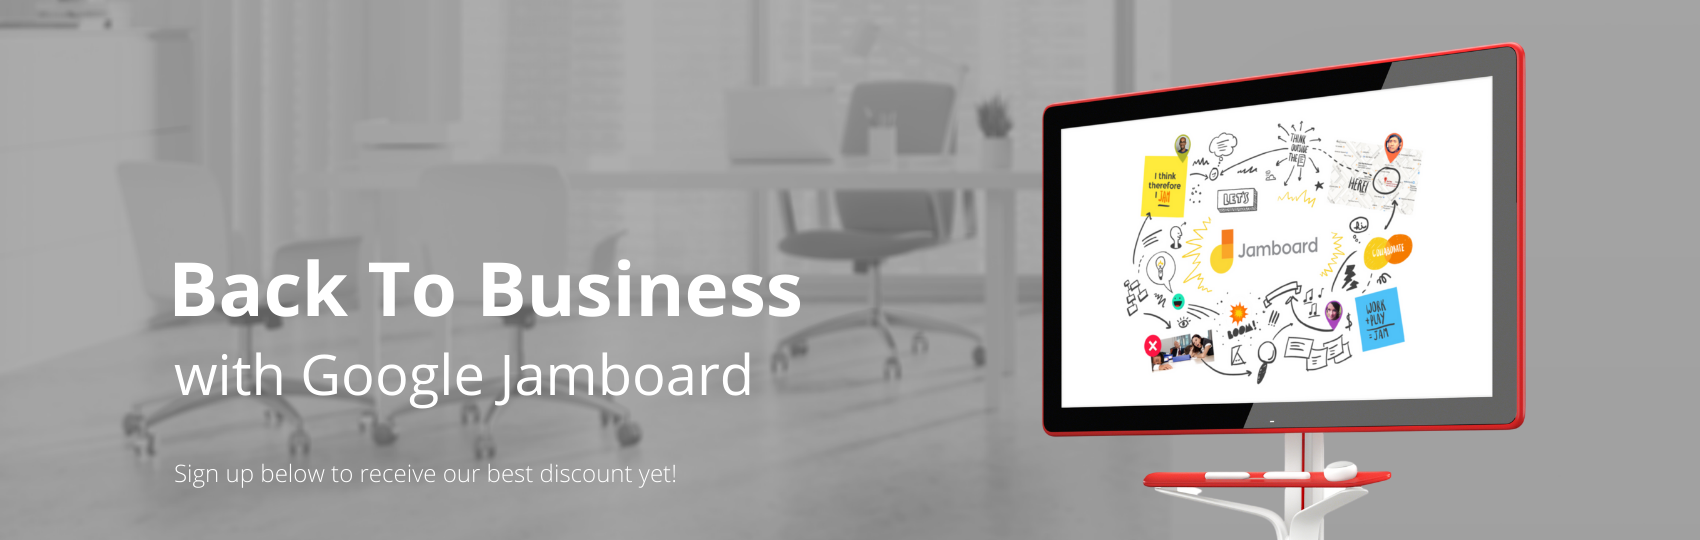 Jamboard special offer